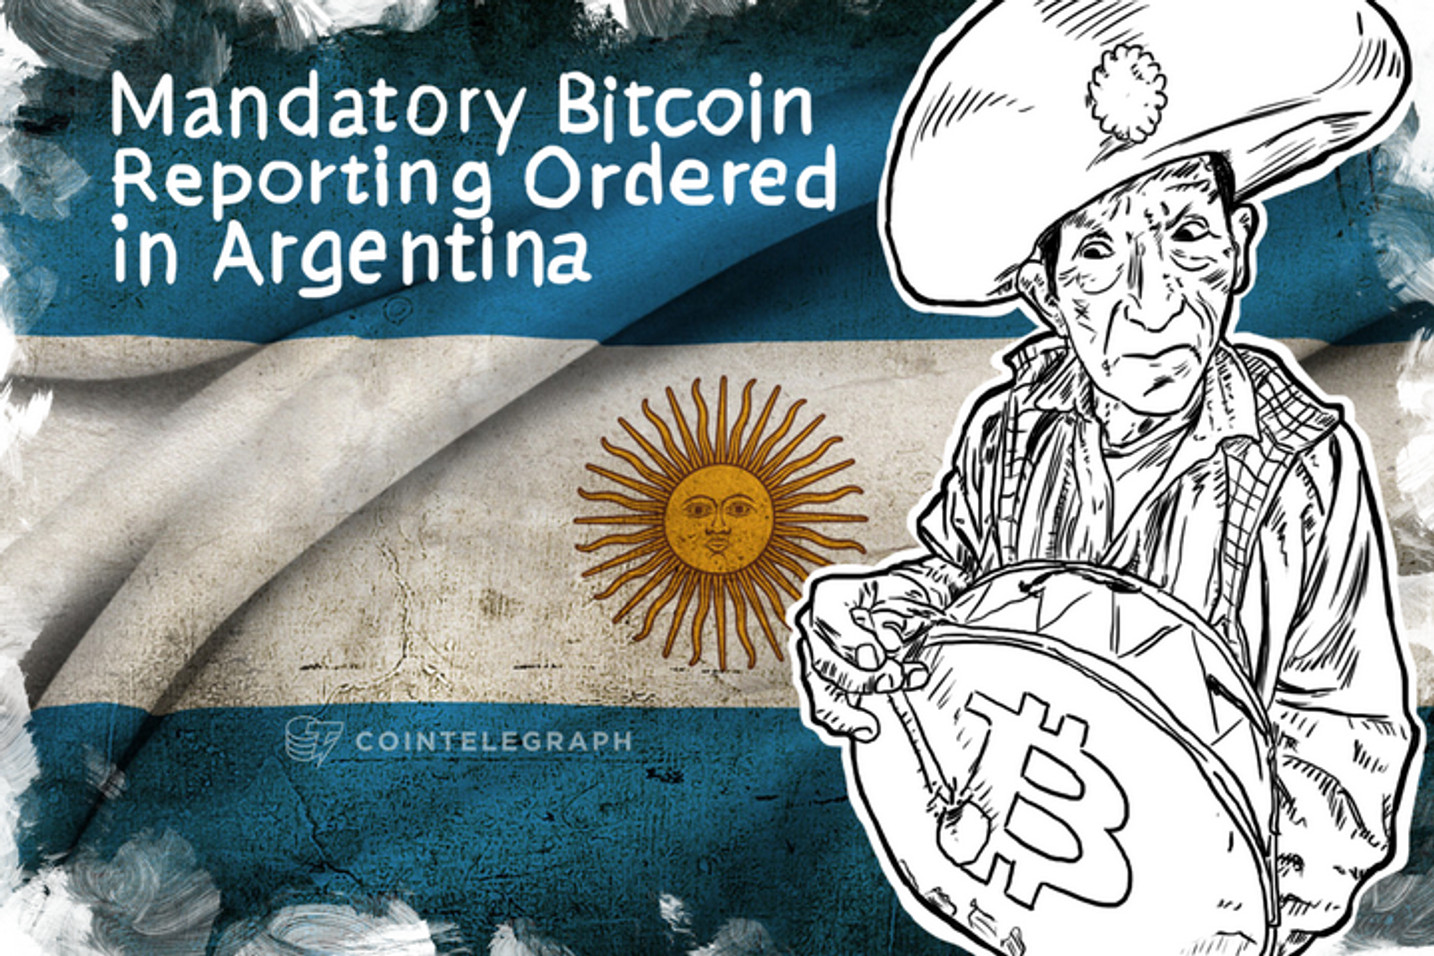 Mandatory Bitcoin Reporting Ordered in Argentina